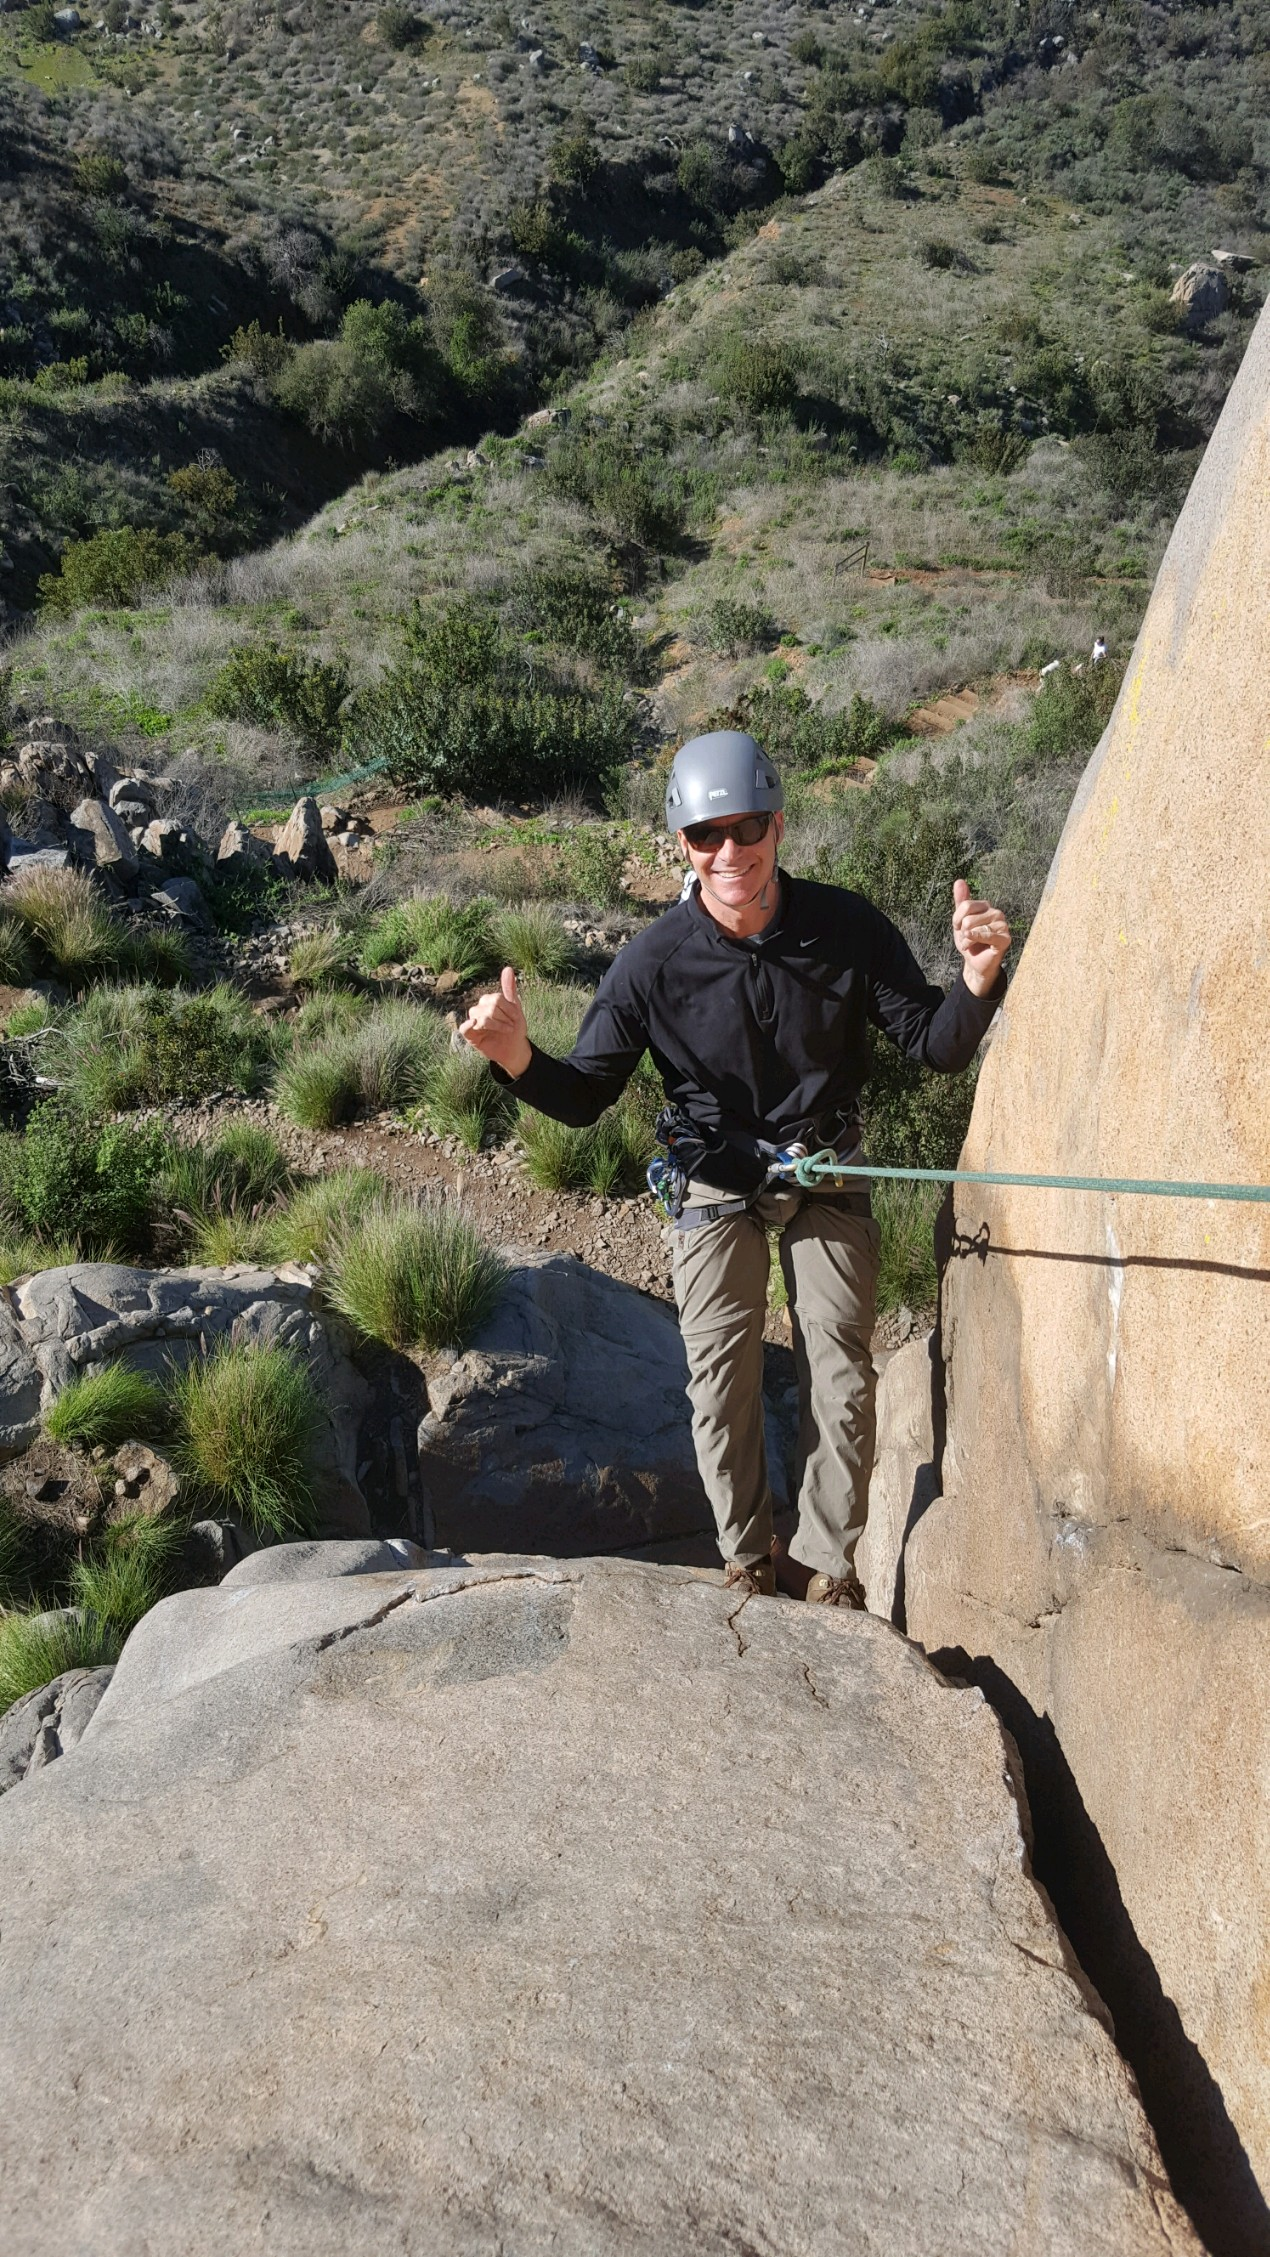 Mission Gorge Rock Climbing